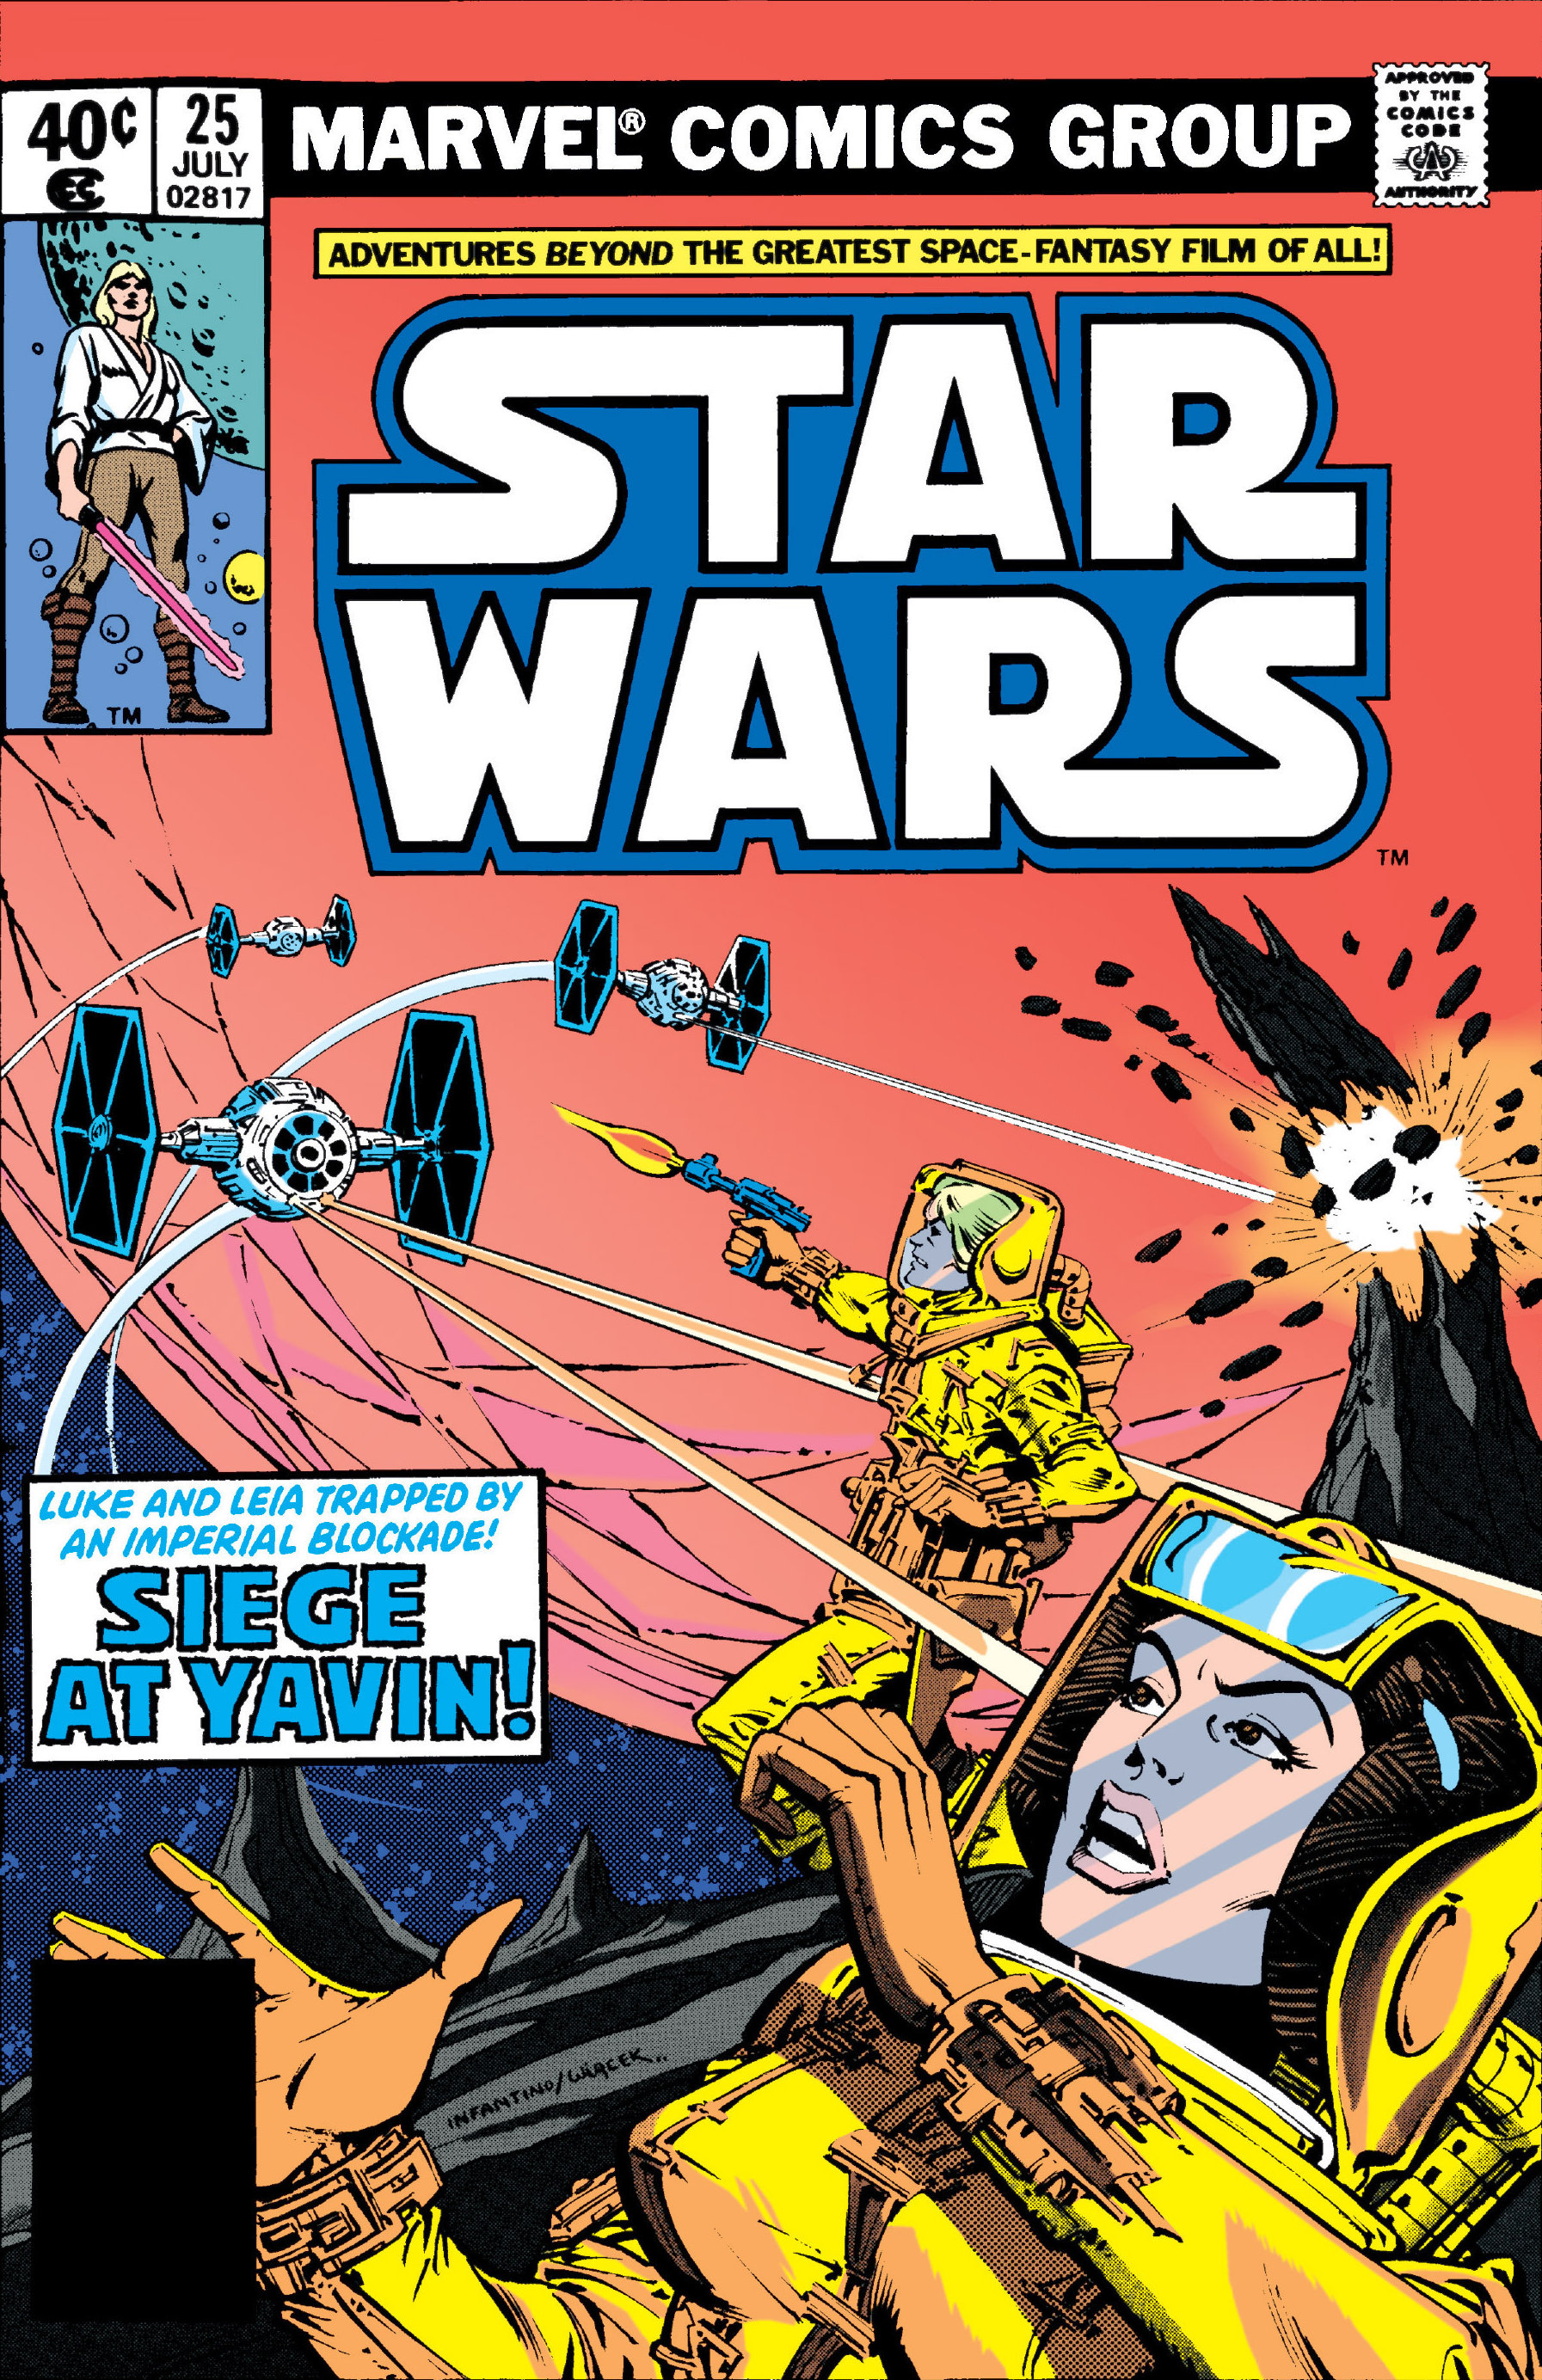 Star Wars (1977) #25, cover penciled by Carmine Infantino & inked by Bob Wiacek.